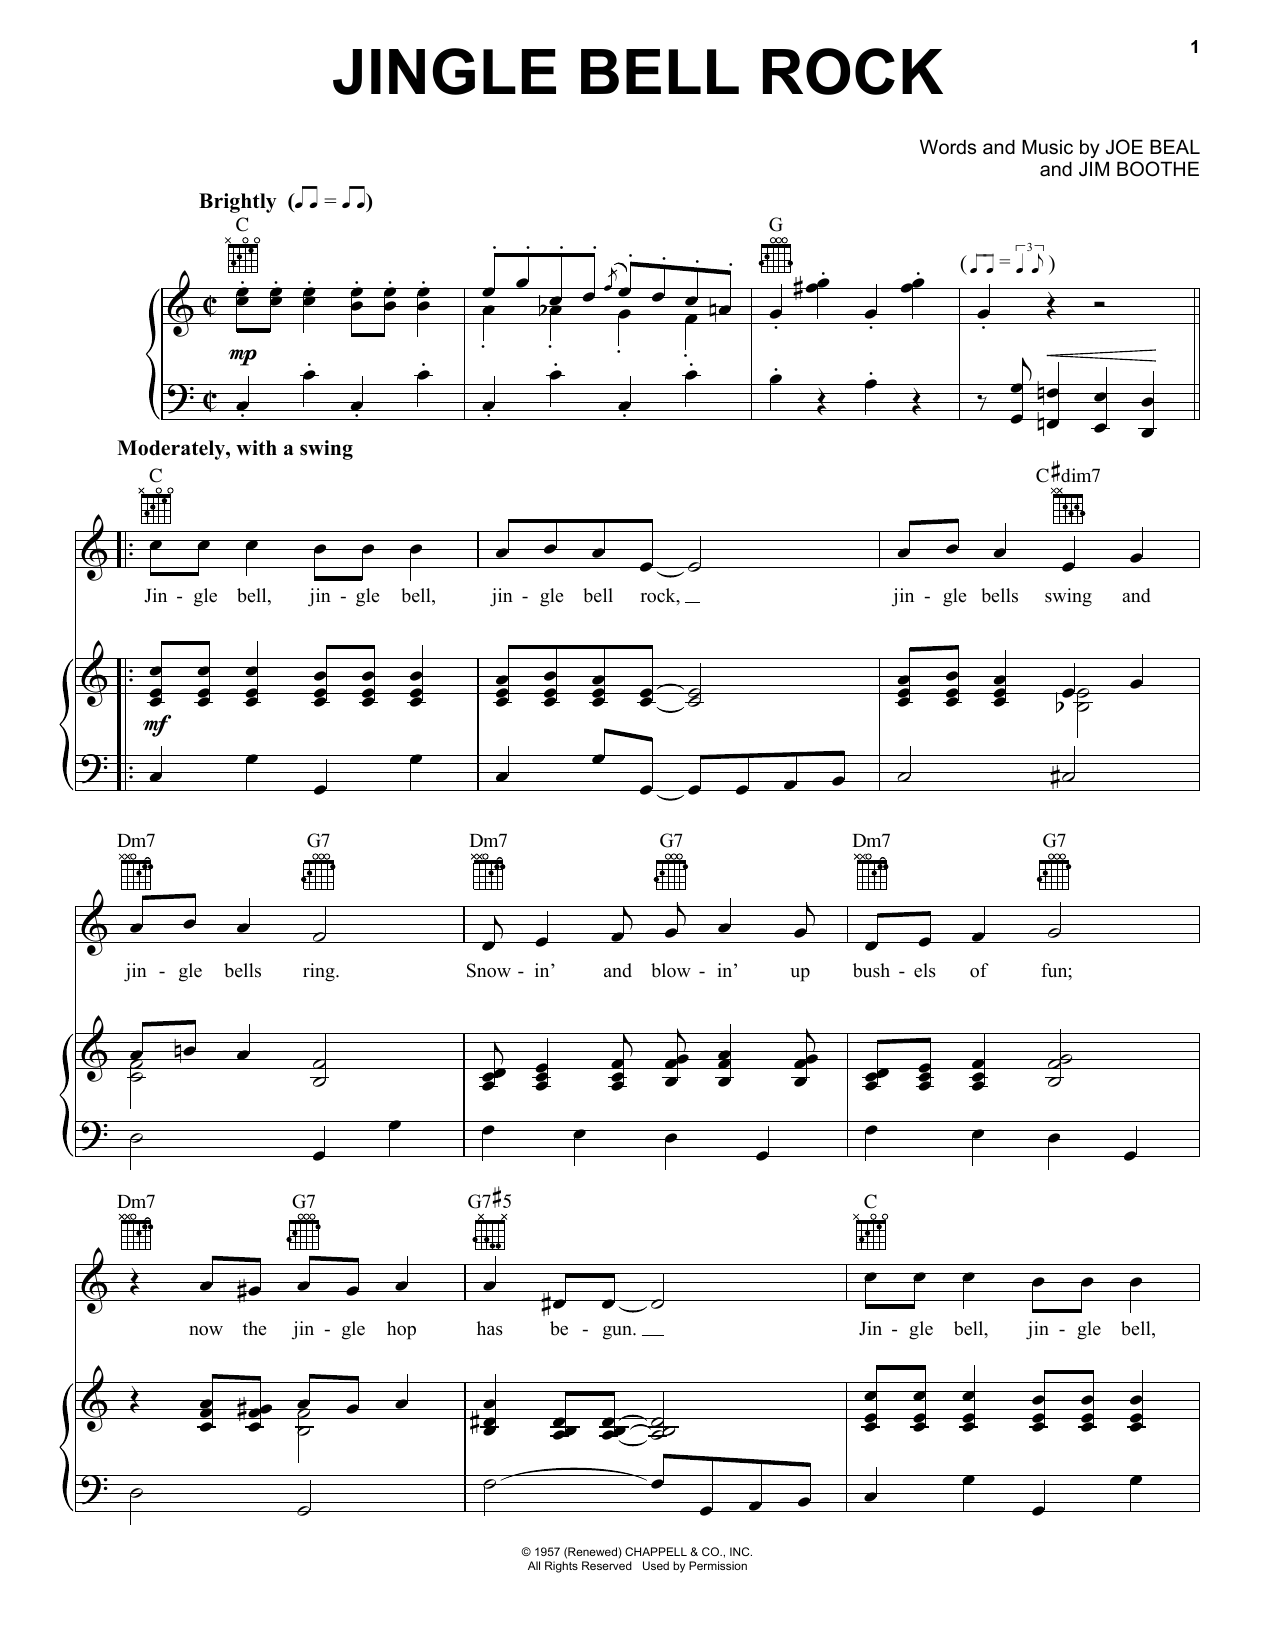 Jingle-Bell Rock | Sheet Music Direct